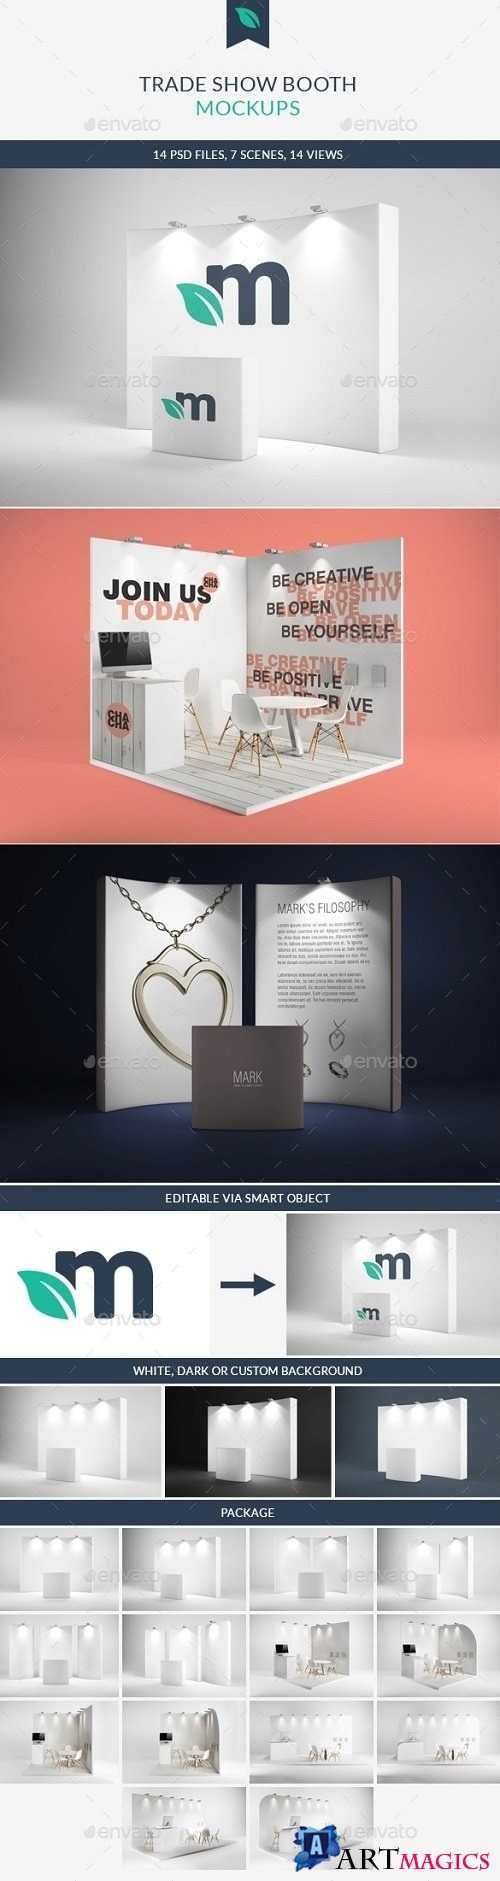 Trade Show Booth Mockups 9273909